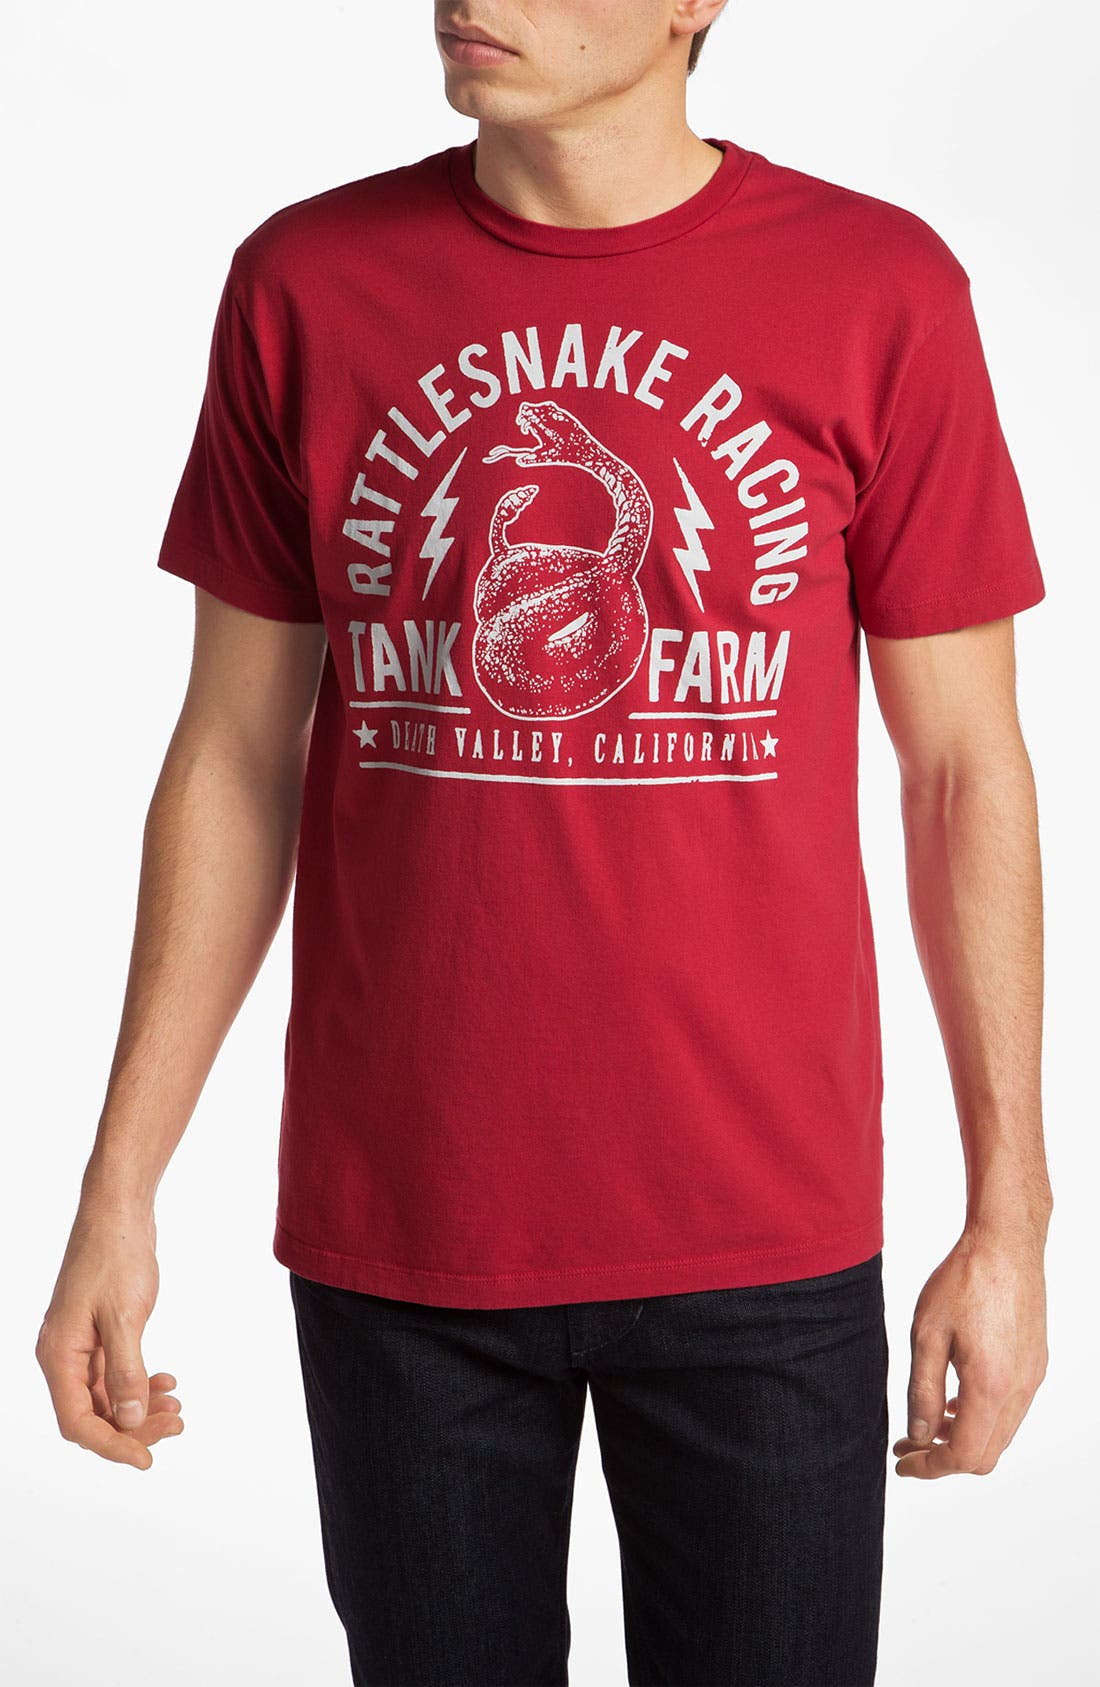 Alternate Image 1 Selected - Tankfarm 'Rattlesnake Racing' Graphic T-Shirt